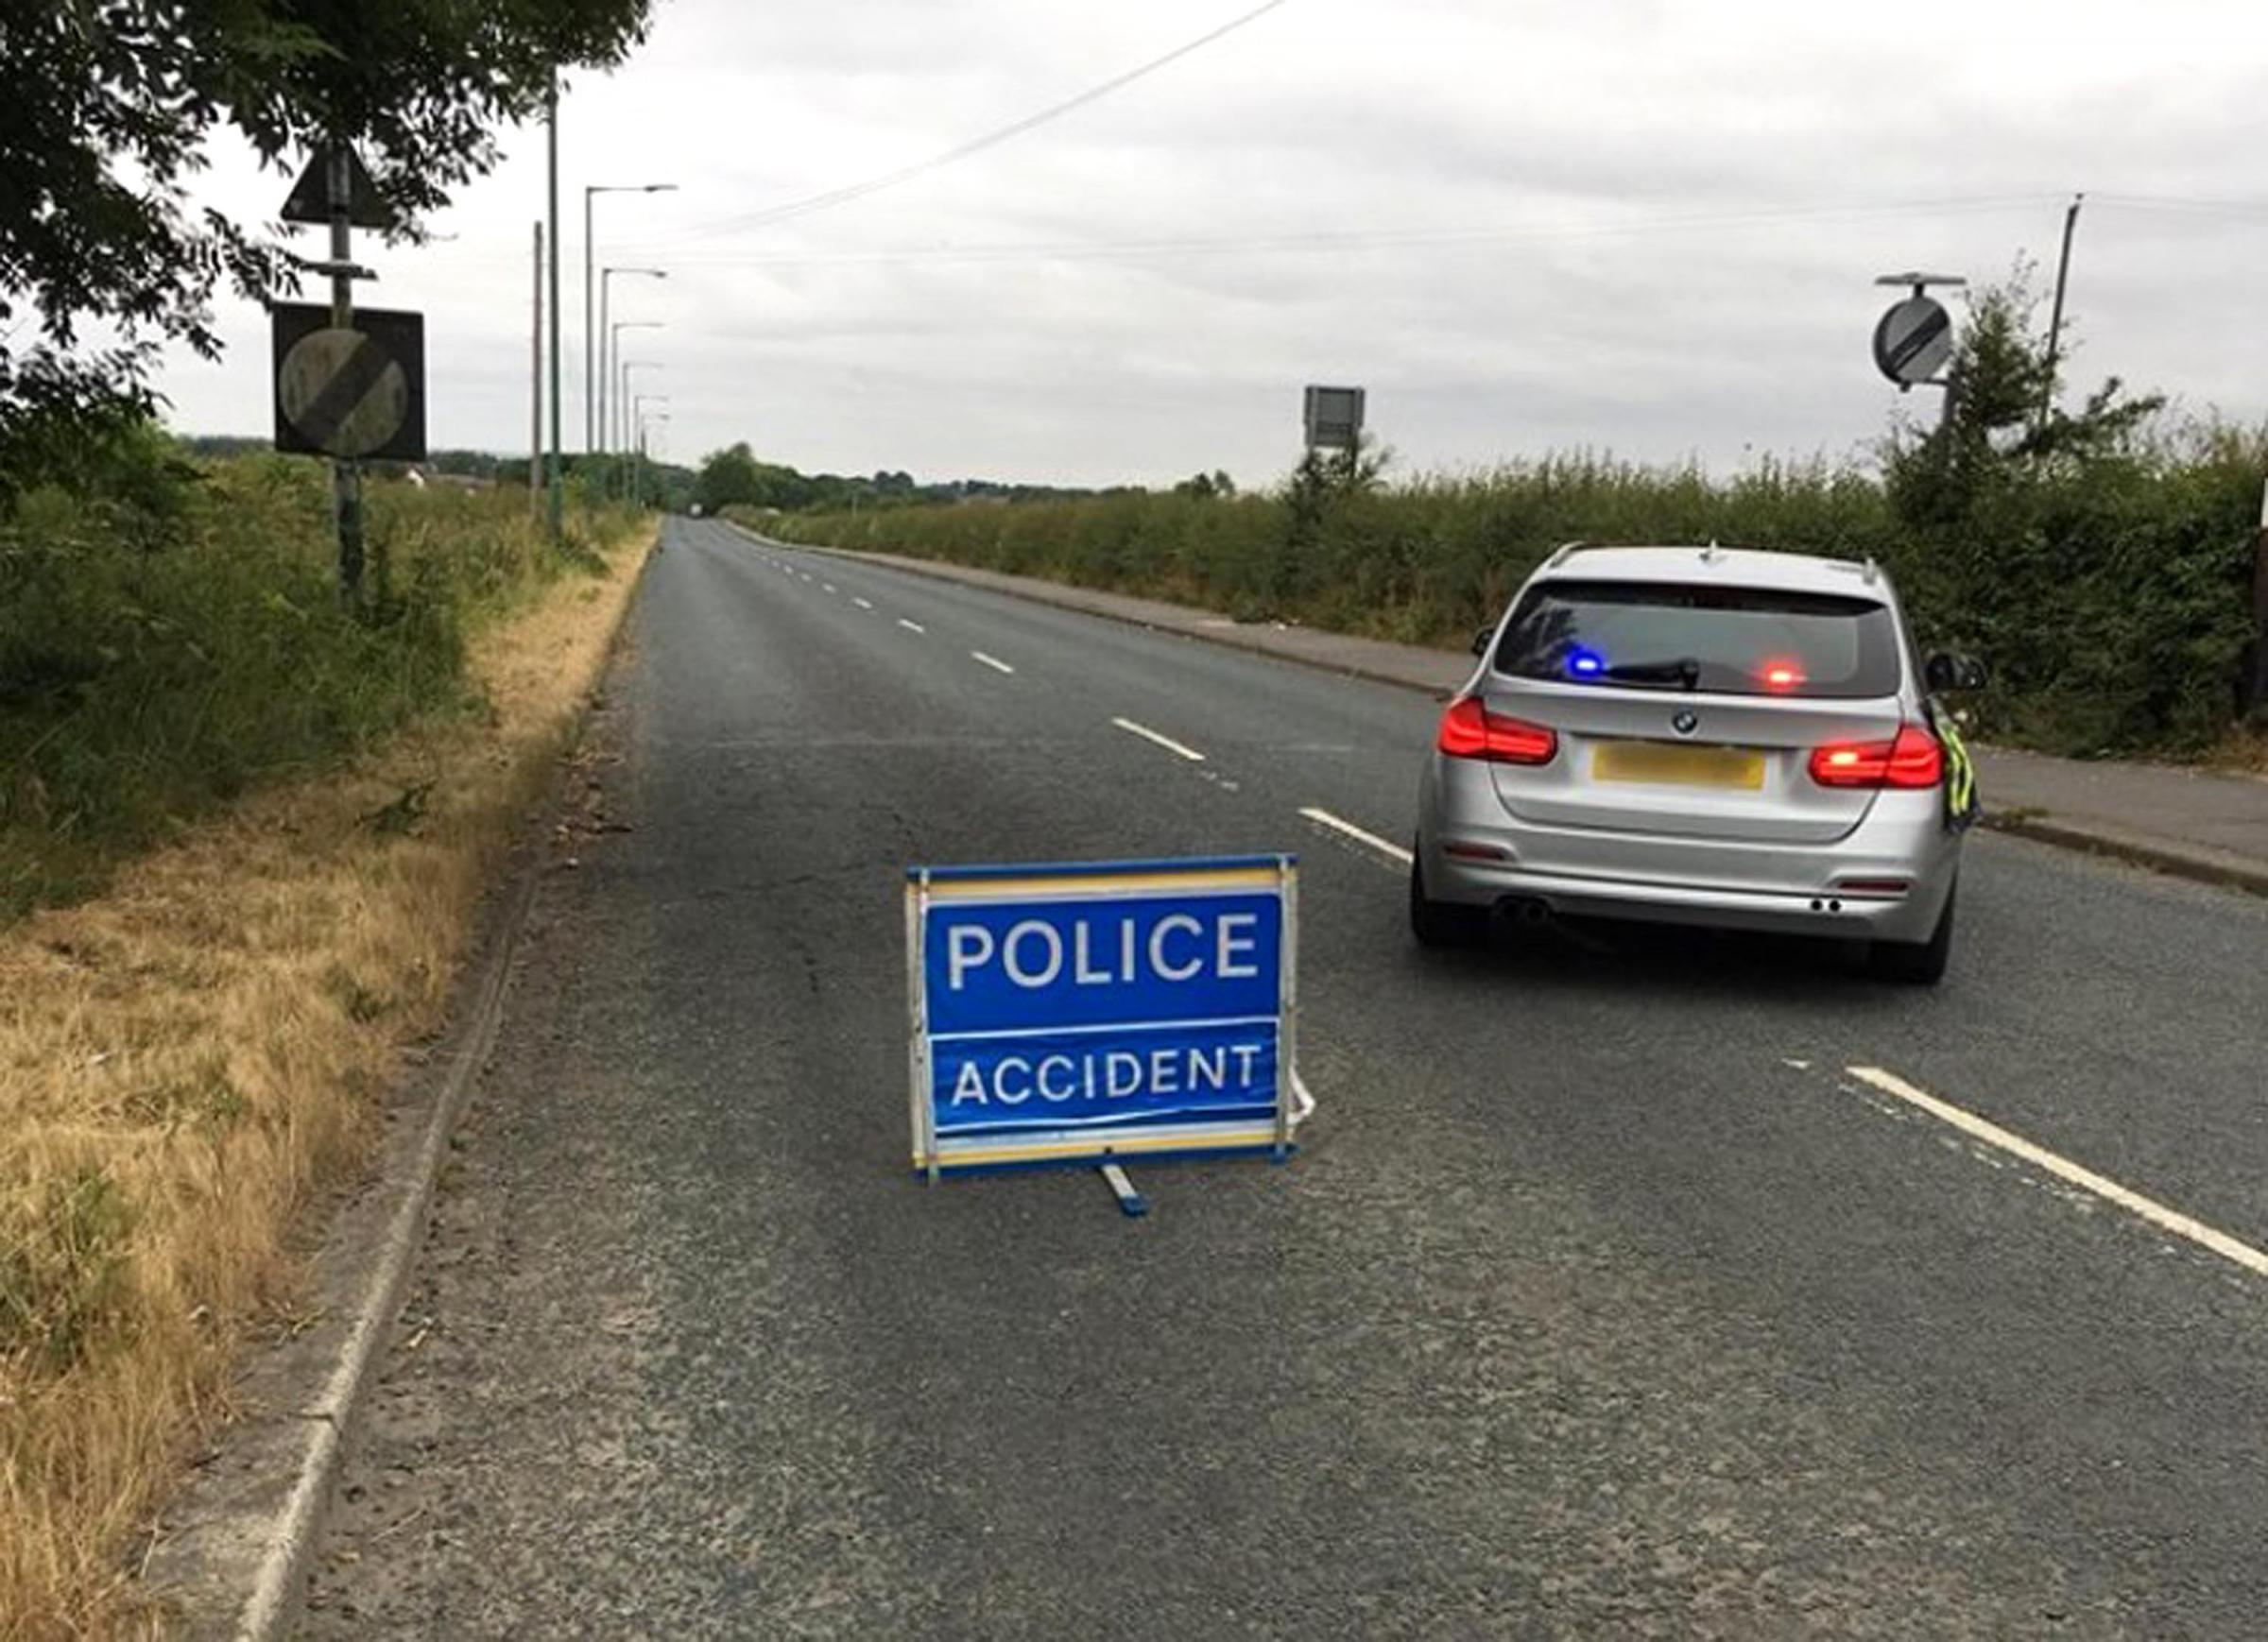 CLOSURE: Road closure on a stretch of the A177 between Bowburn and Durham, today